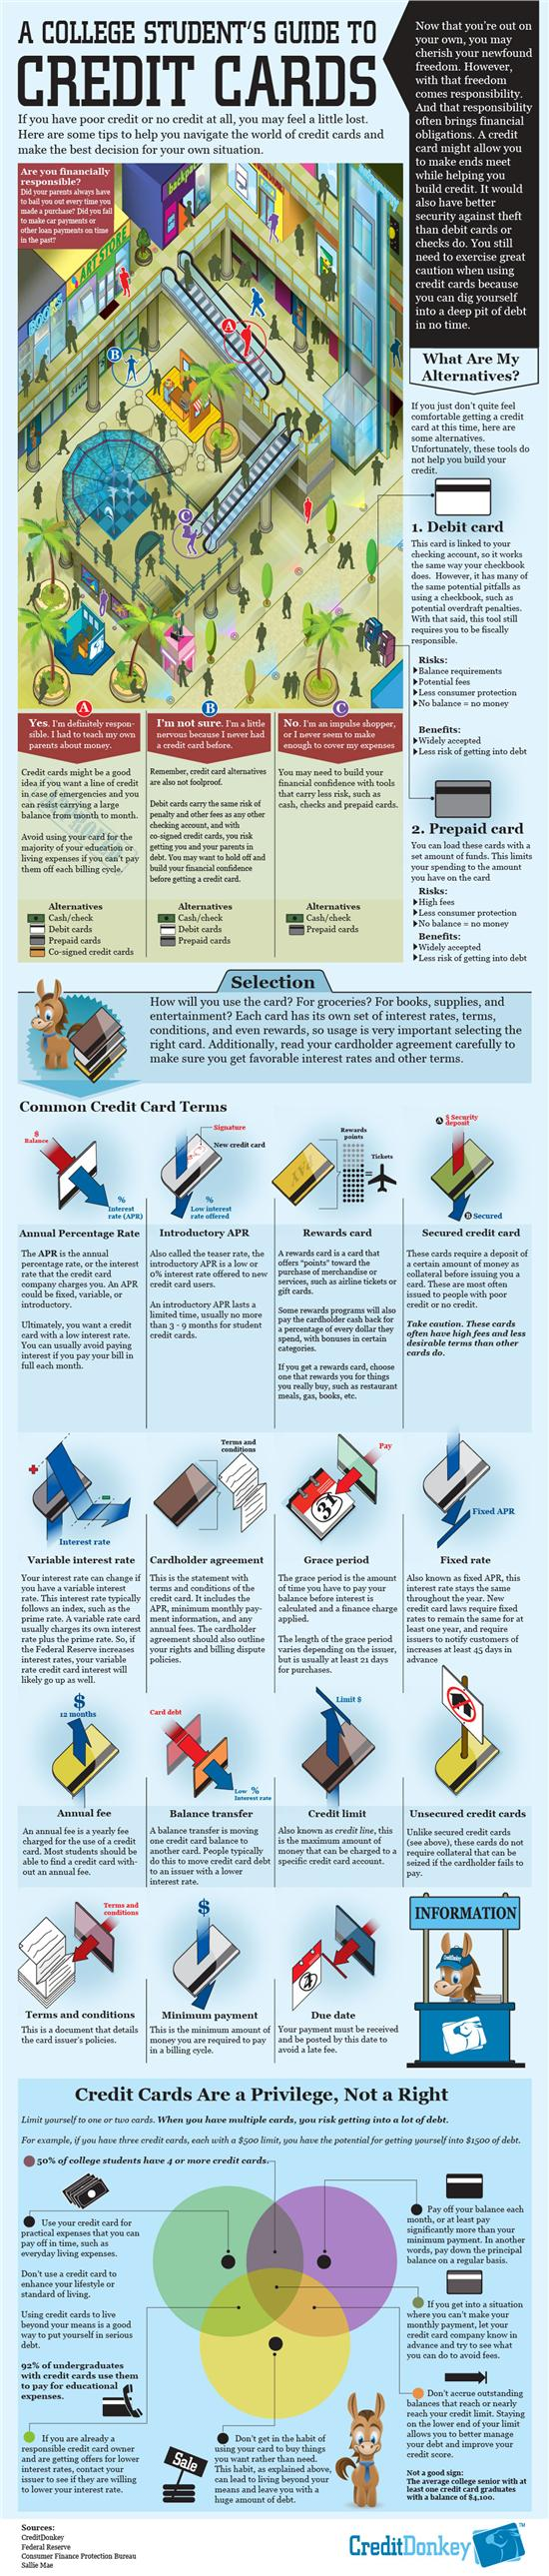 Student Guide to Credit Cards